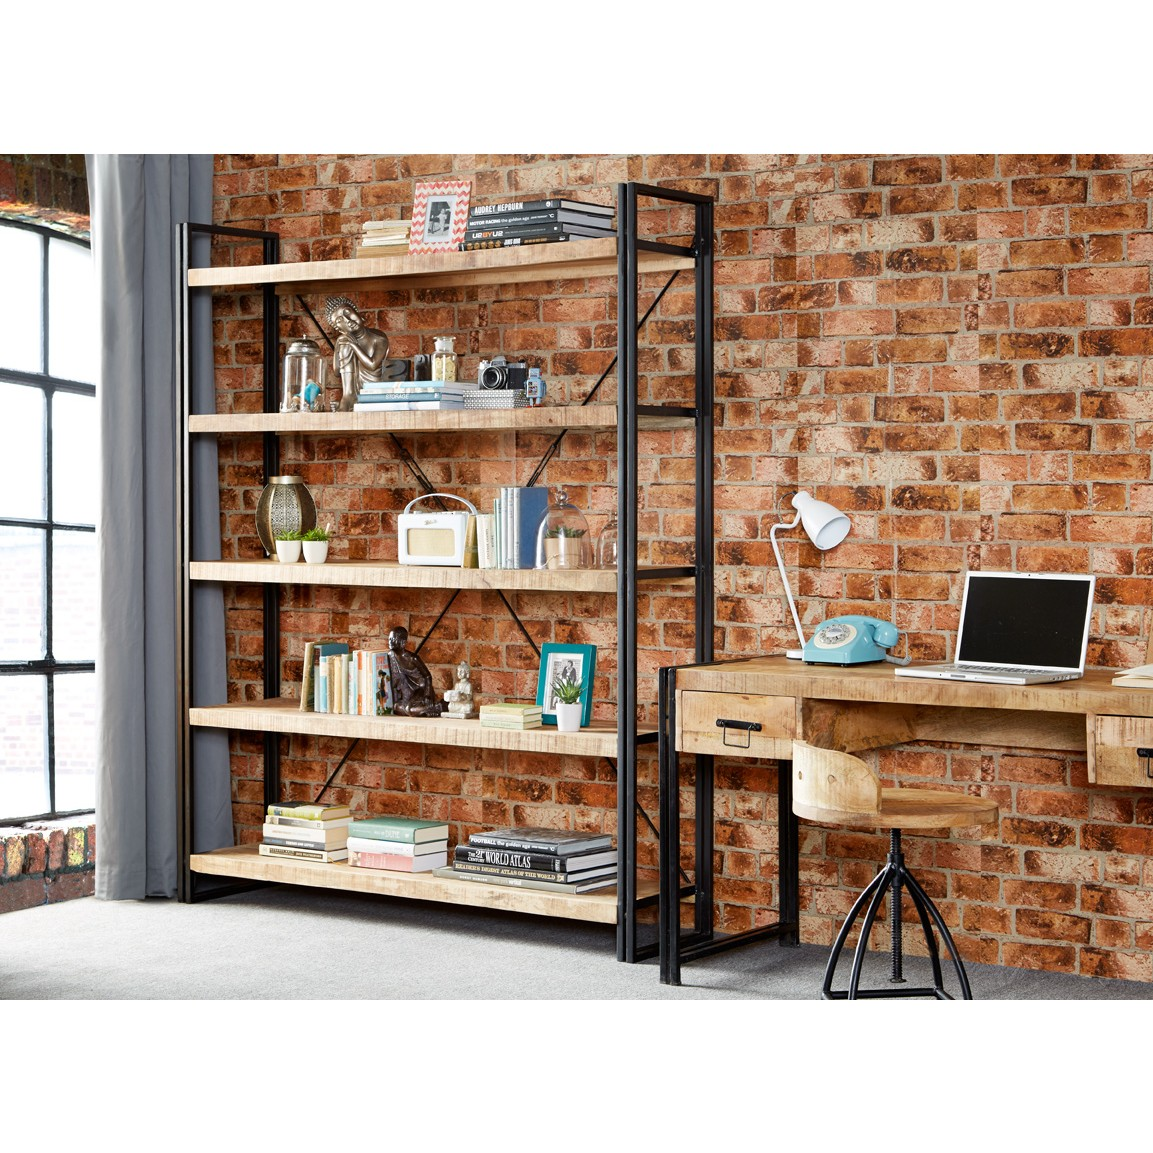 Rattan Bookshelf Bedroom